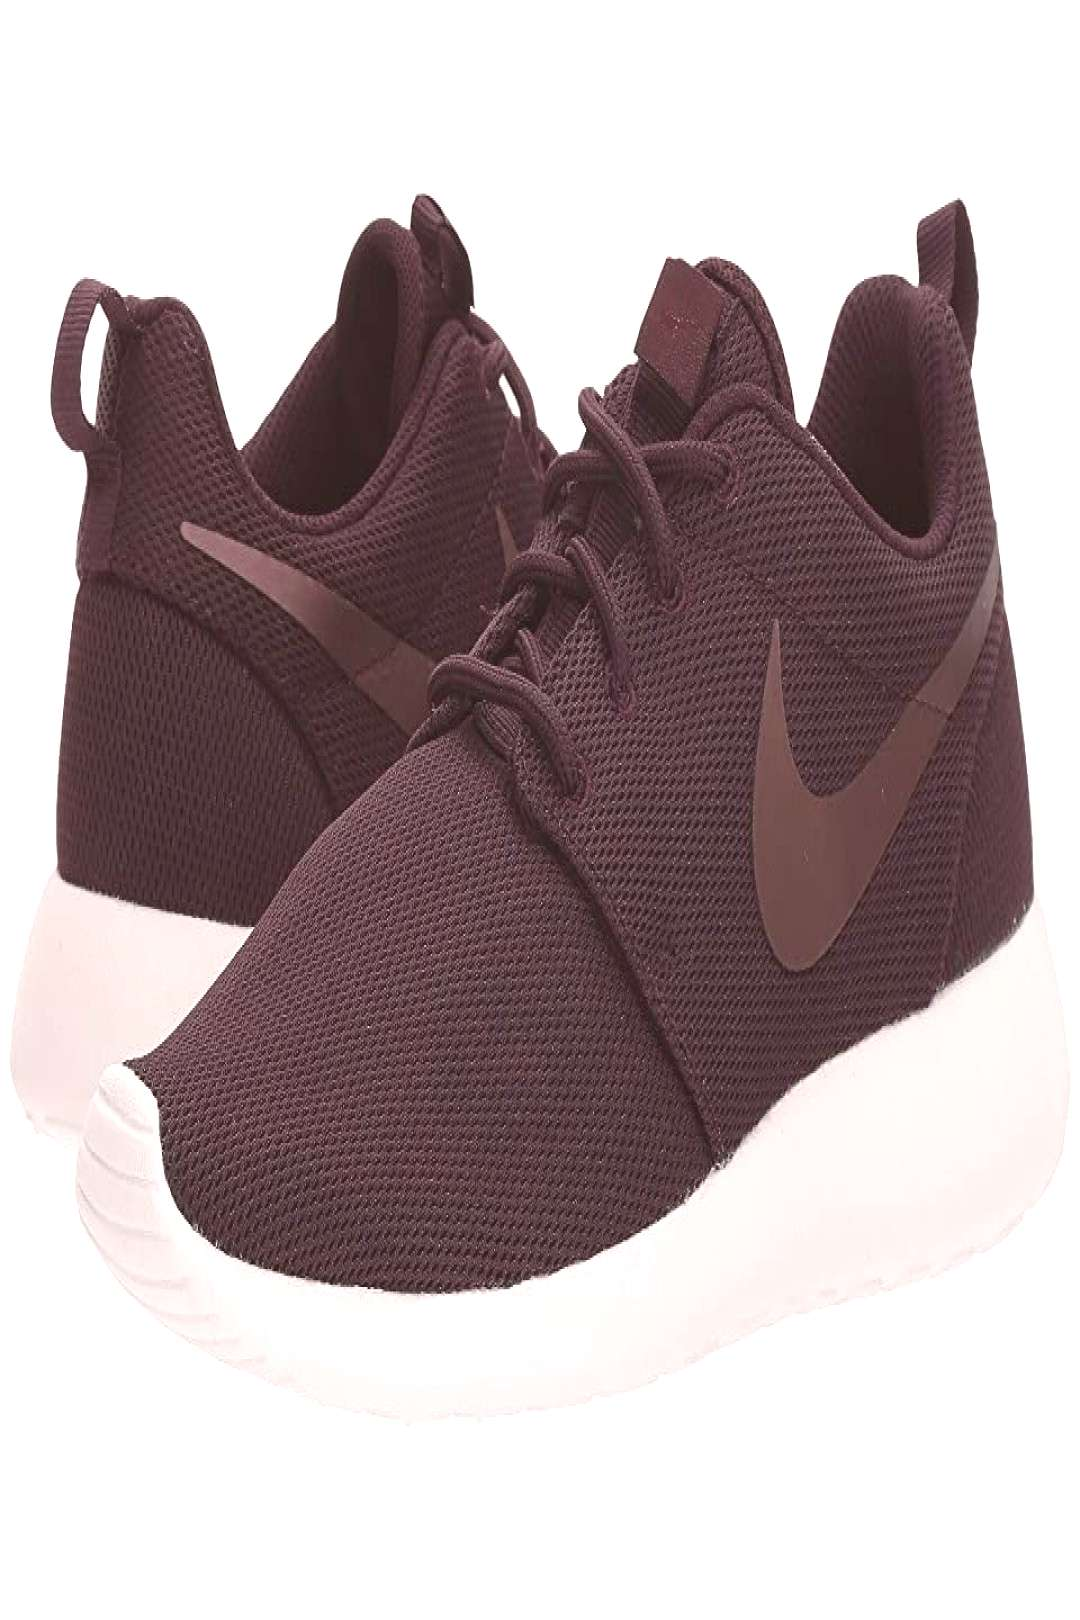 Nike Roshe One (Port Wine/Metallic Mahogany/Summit White) Womens Shoes. Go from sweating it out a